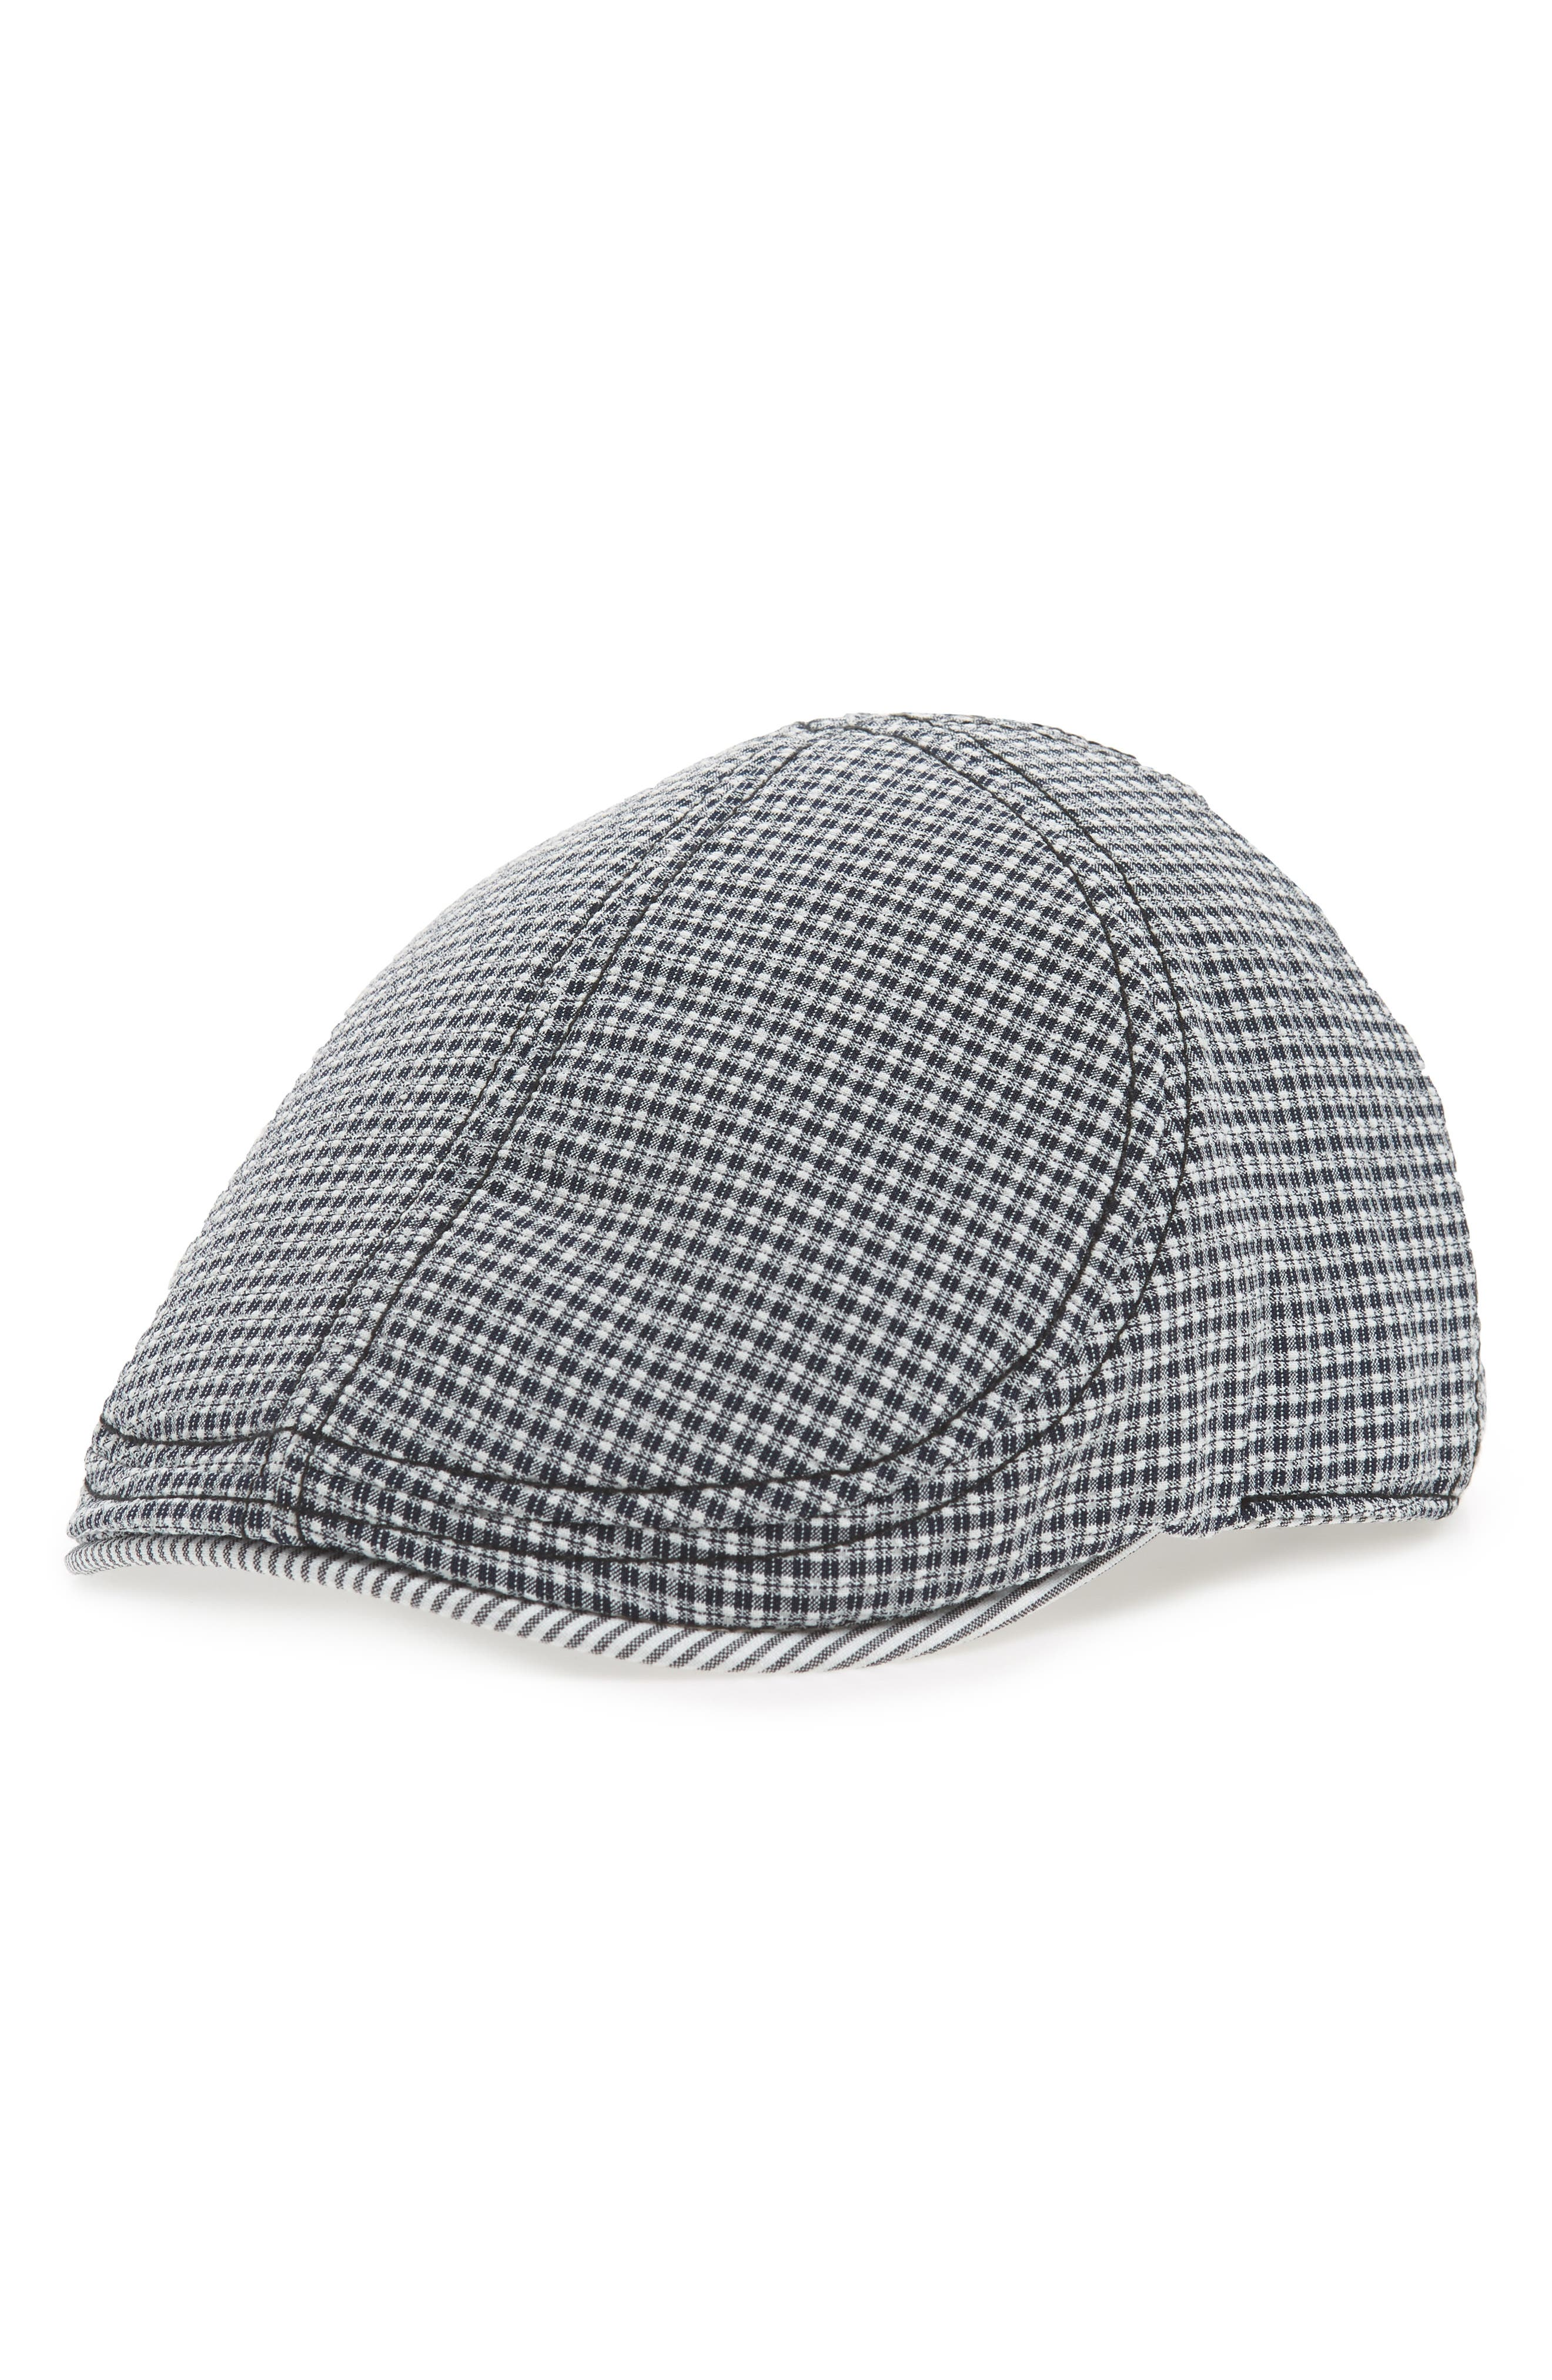 Fridays Driving Cap,                             Main thumbnail 1, color,                             020